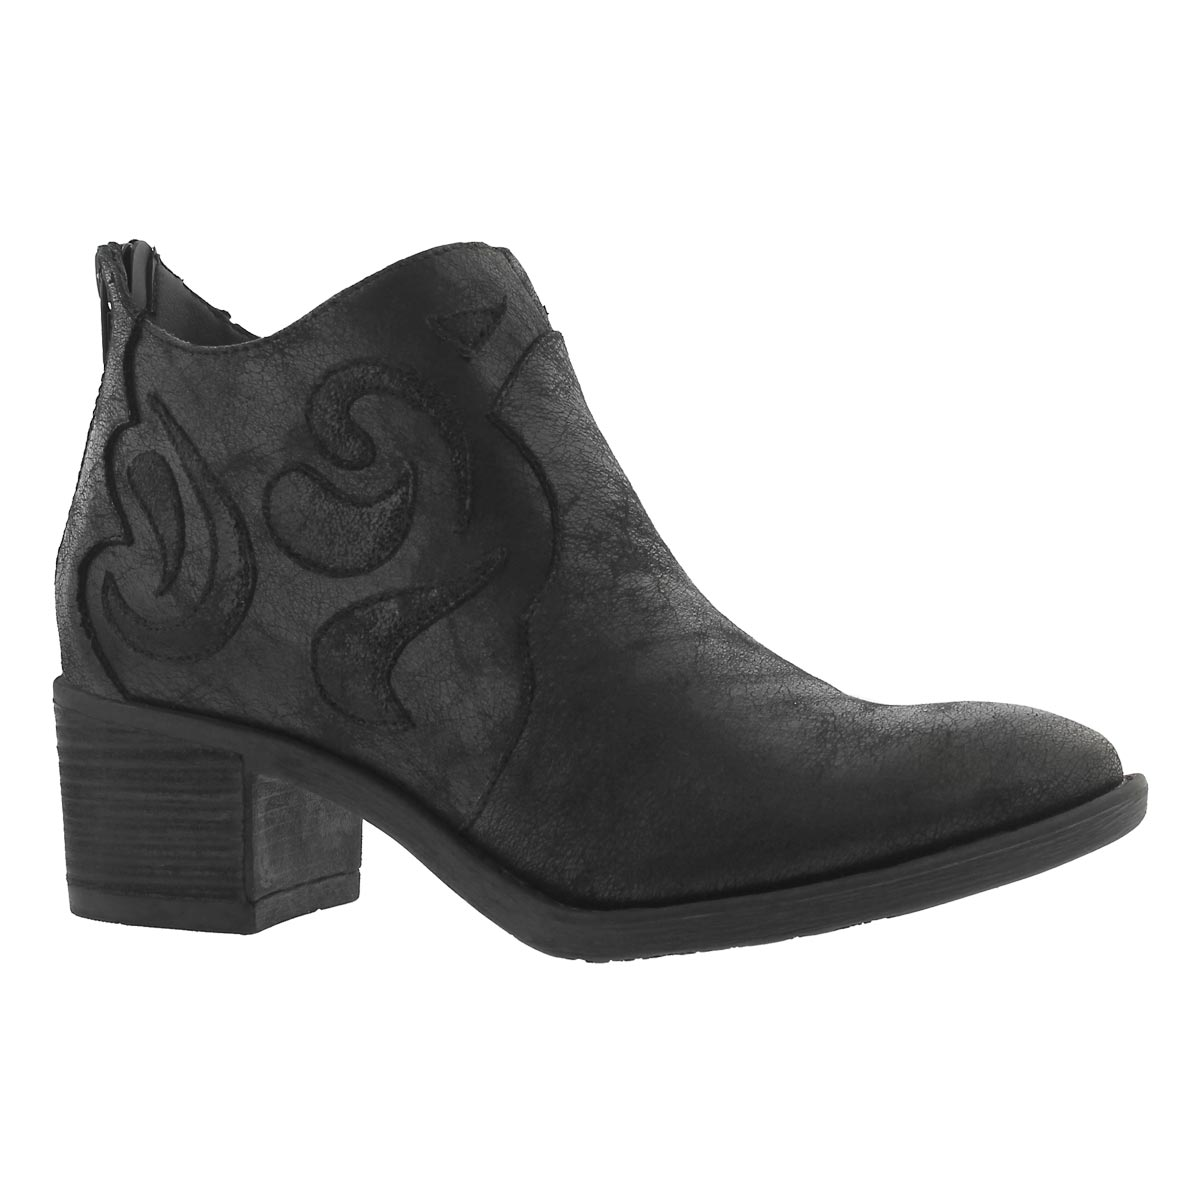 Women's TATIANA black casual ankle boots